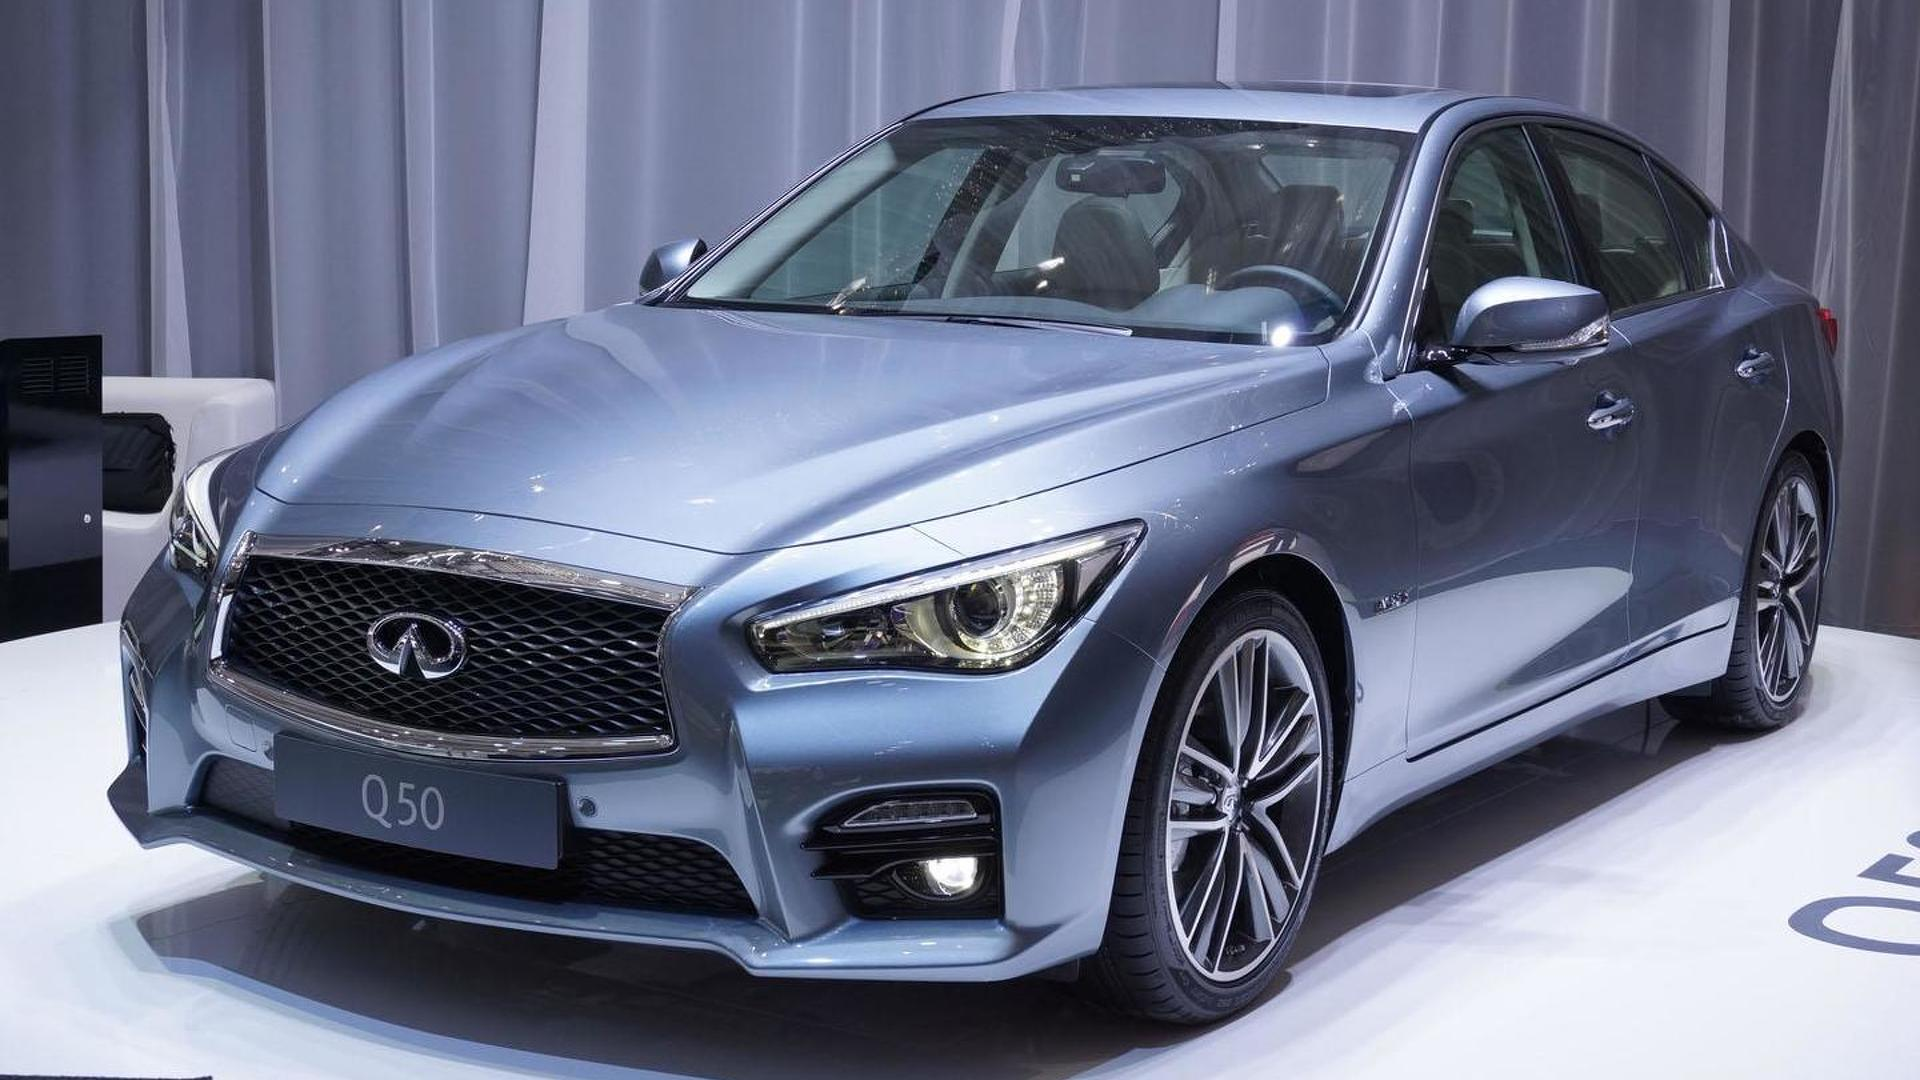 2014 Infiniti Q50 unveiled in Geneva with a diesel engine